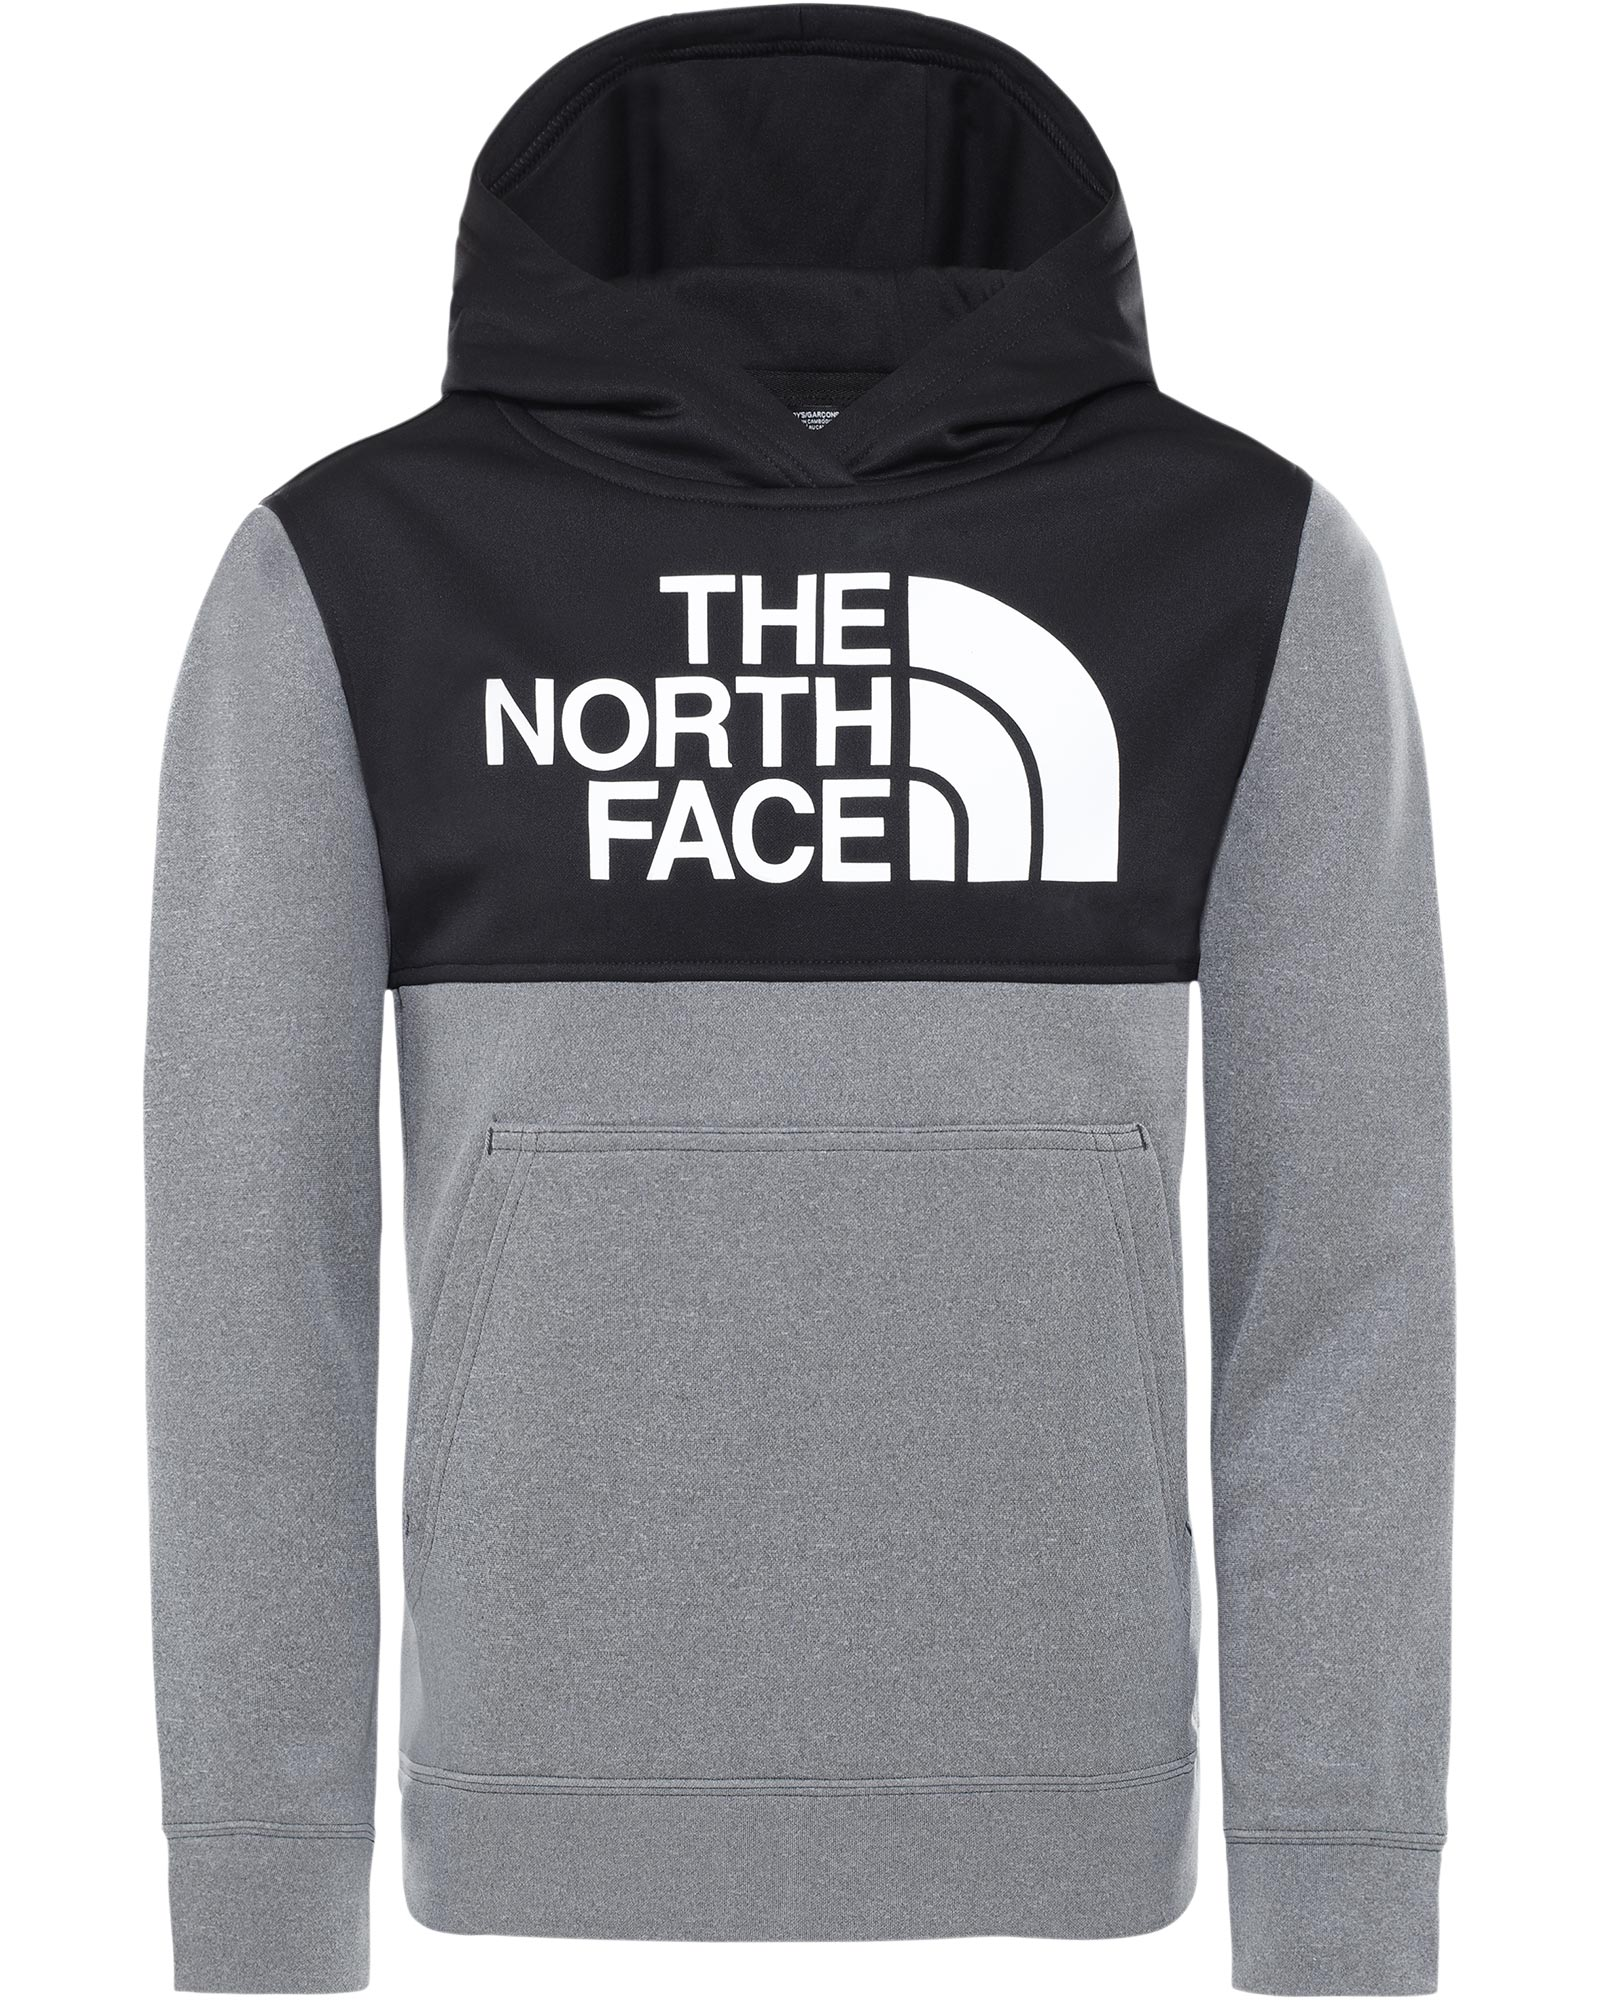 The North Face Surgent Pullover Block Boys' Hoodie XL 0